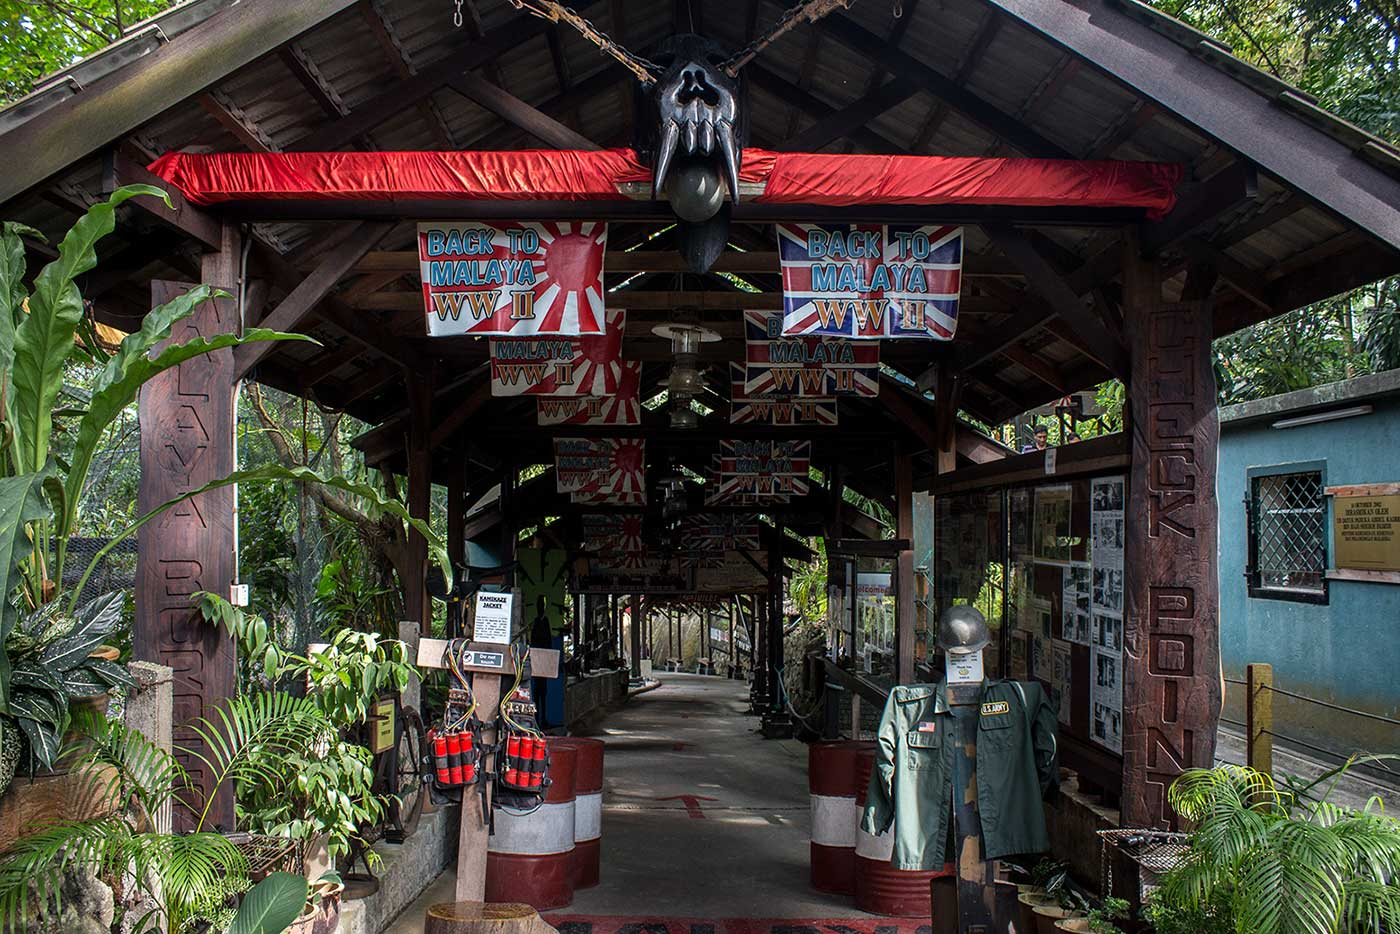 A massive wooden skull, rusted rifles and a Kamikaze bomb vest decorate the entrance to the Penang War Museum.